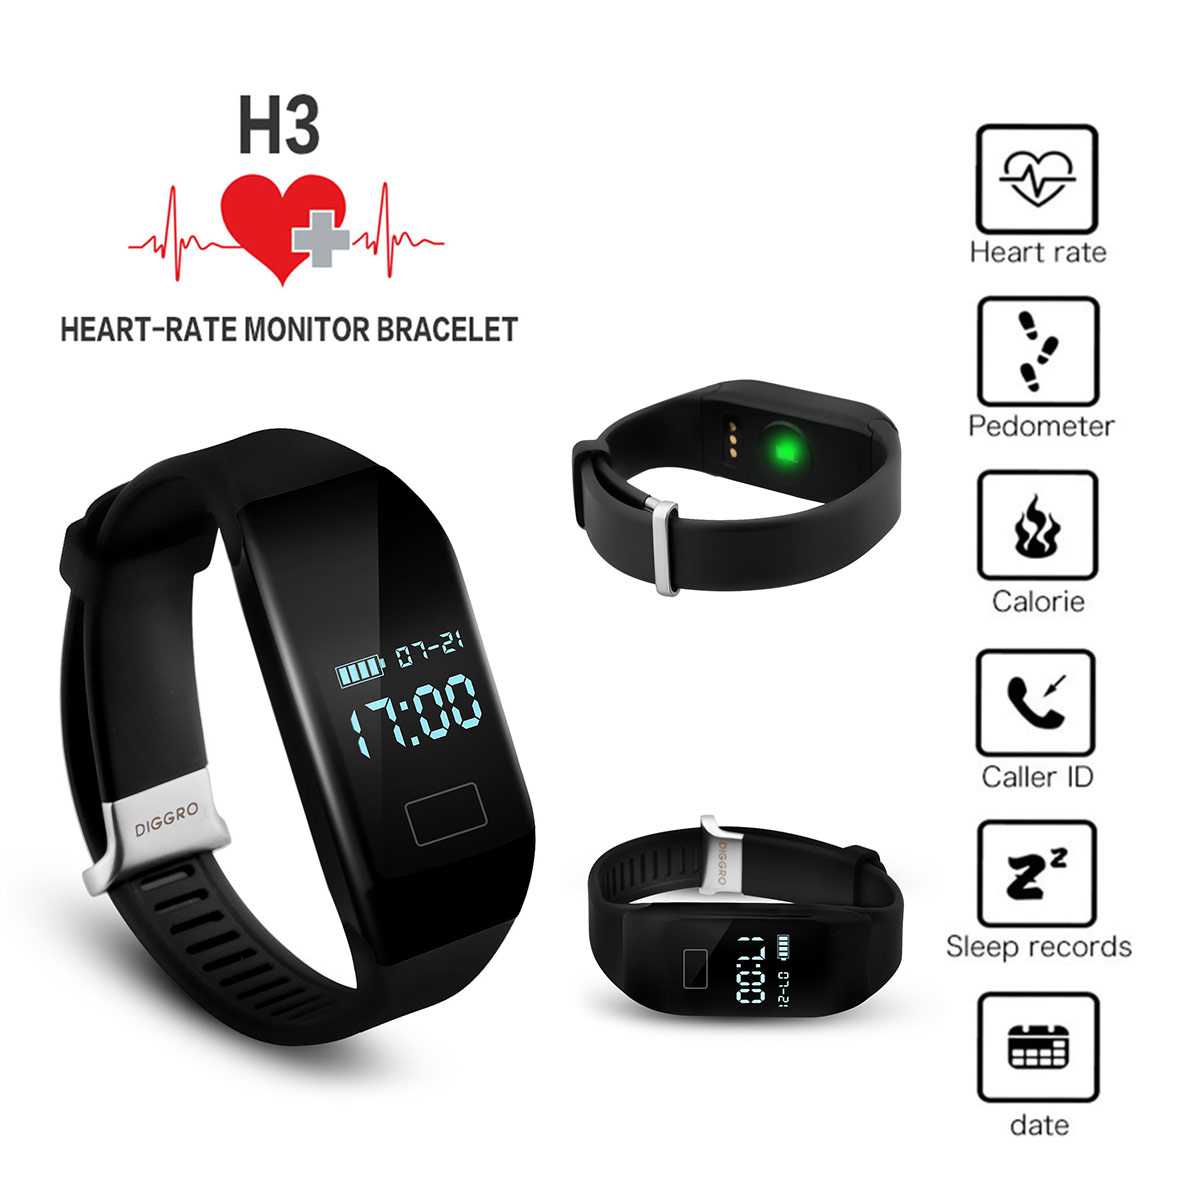 Diggro H3 Smart Sports Wristband Watch Band Heart Rate Monitor For Android Ios Ebay